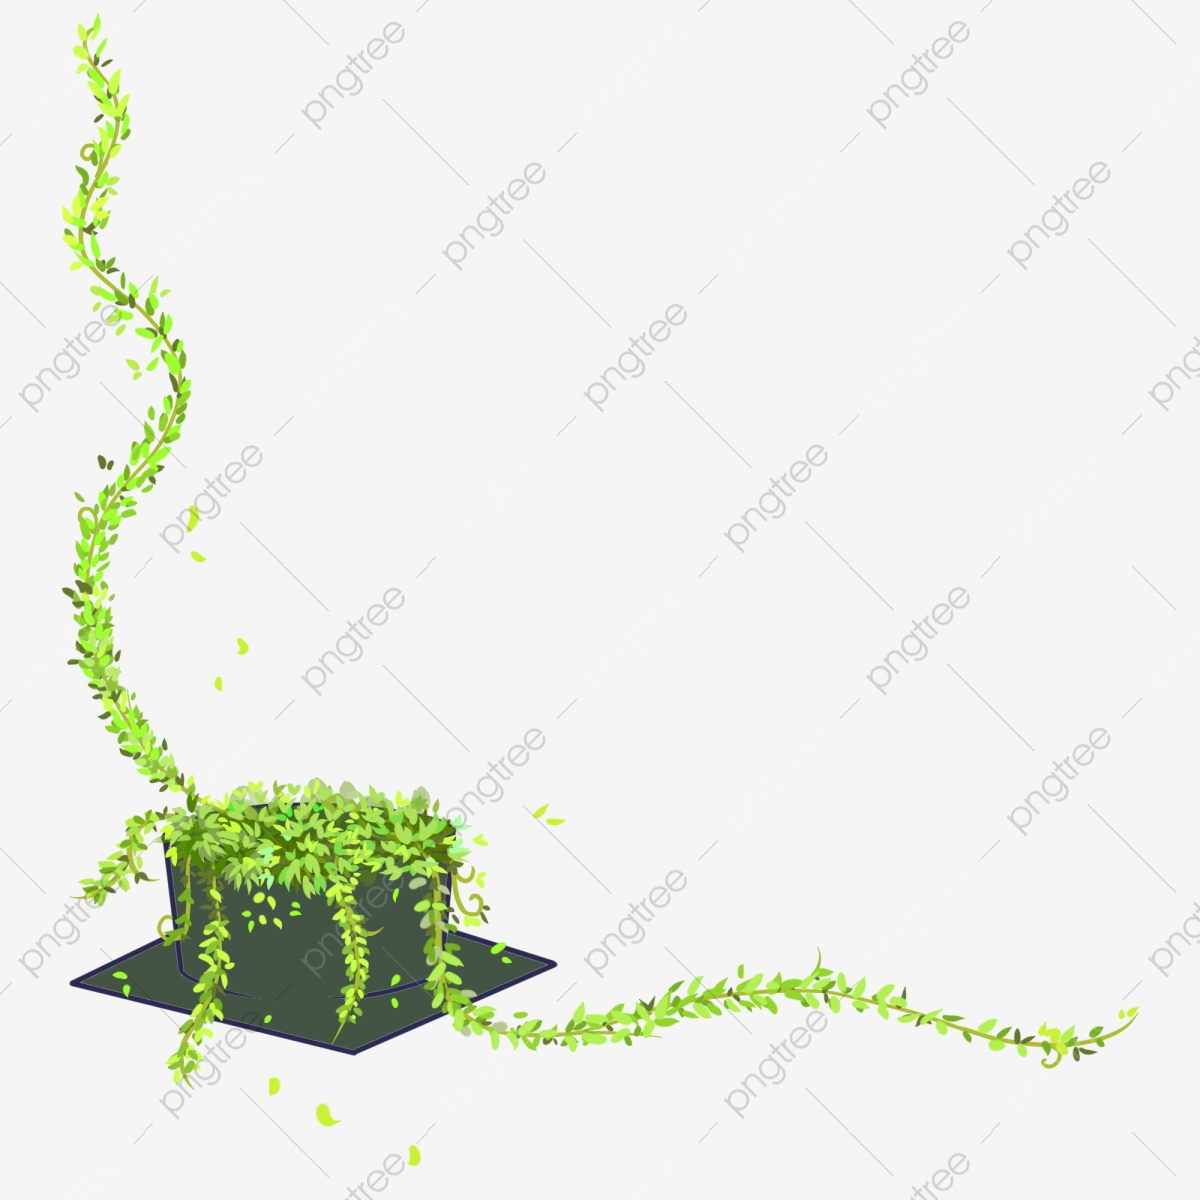 Free Ivy Cliparts, Download Free Clip Art, Free Clip Art on Clipart Library